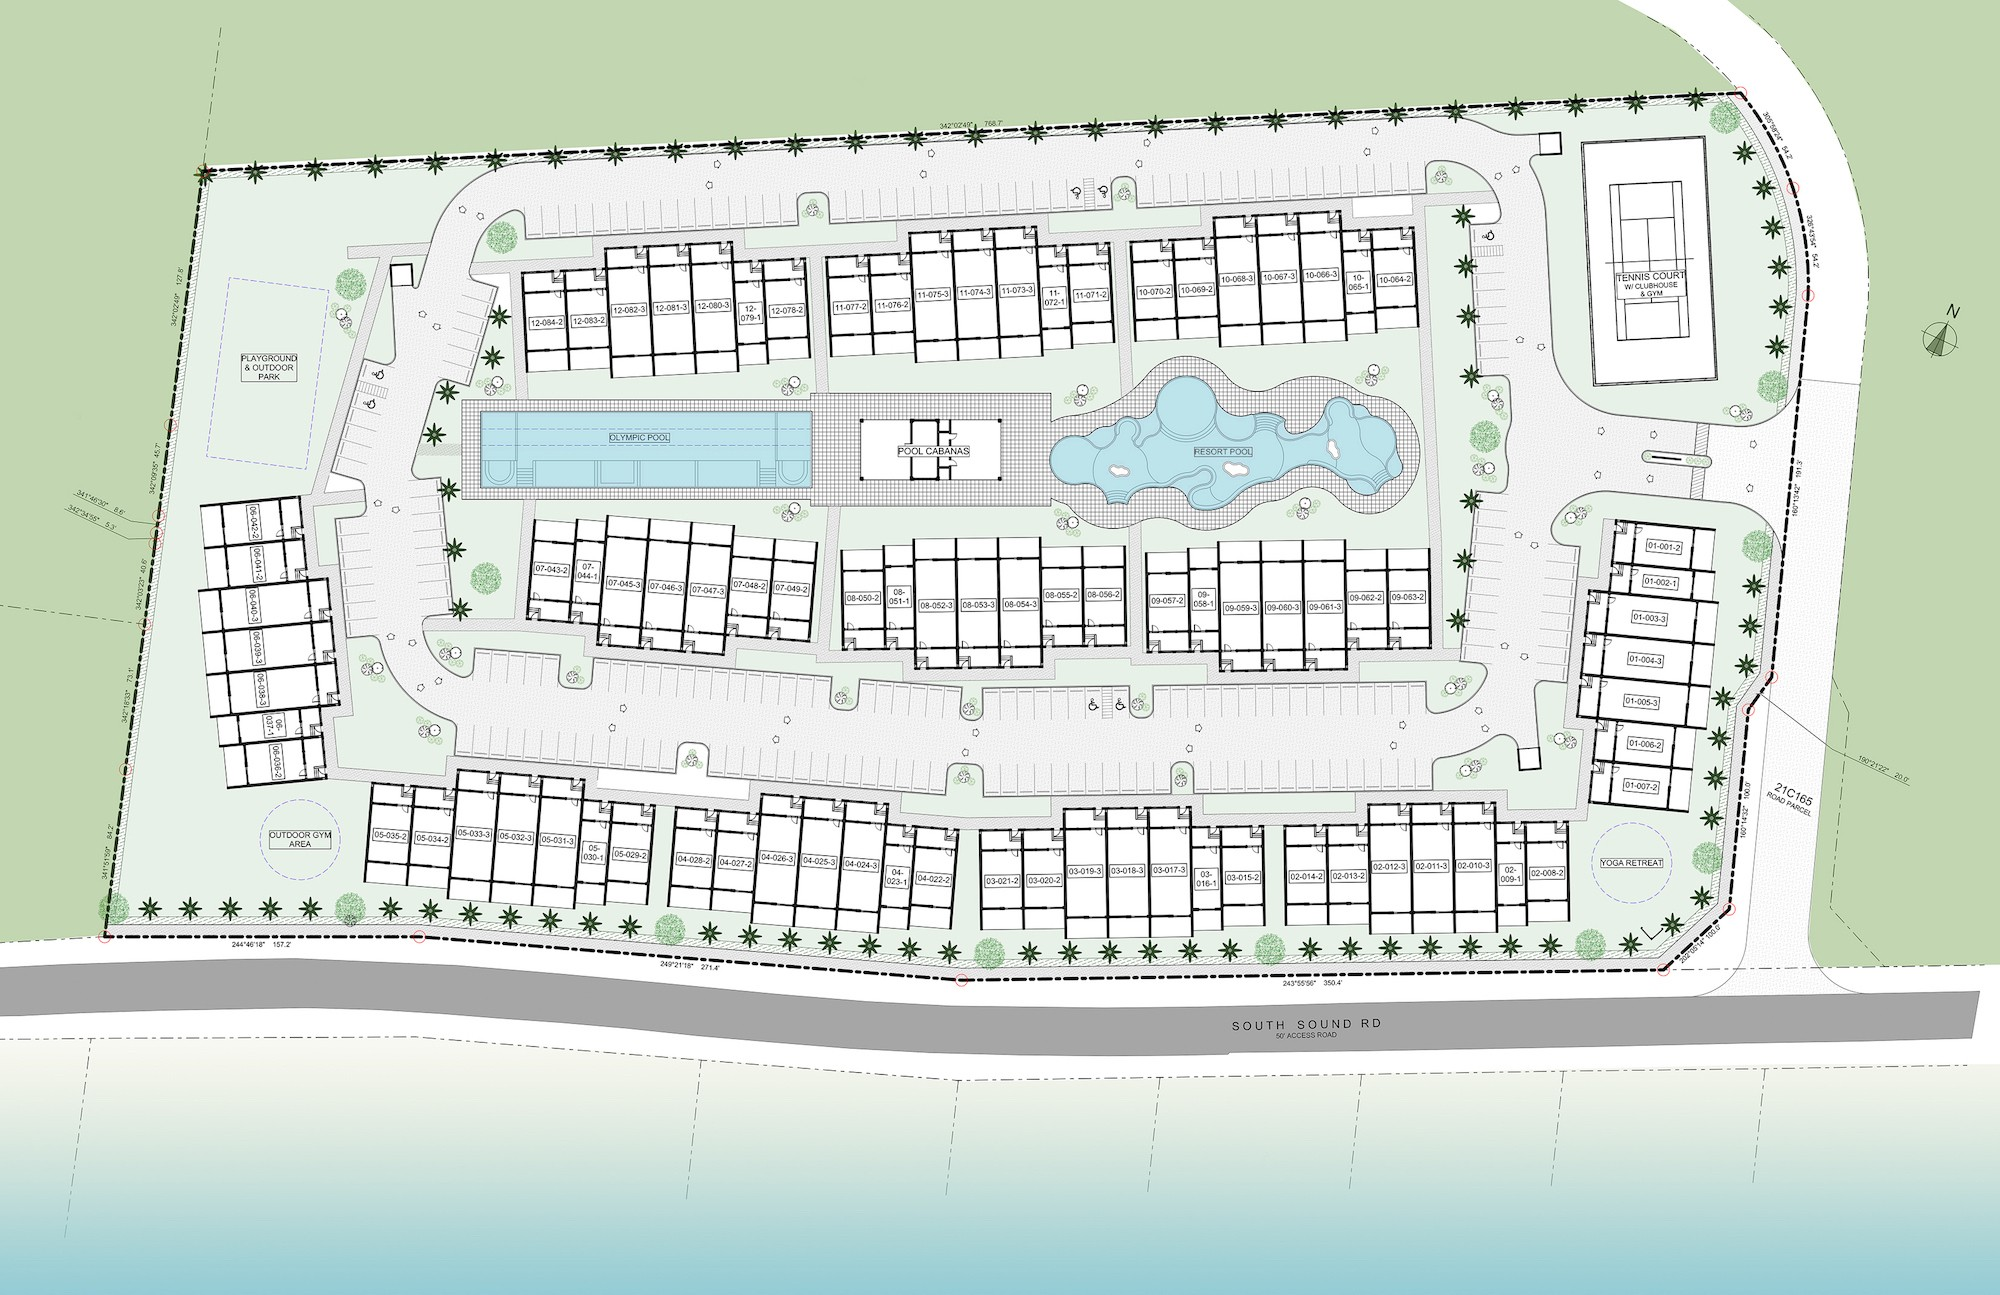 SITE PLAN OF TOWNHOUSE IN BAHIA